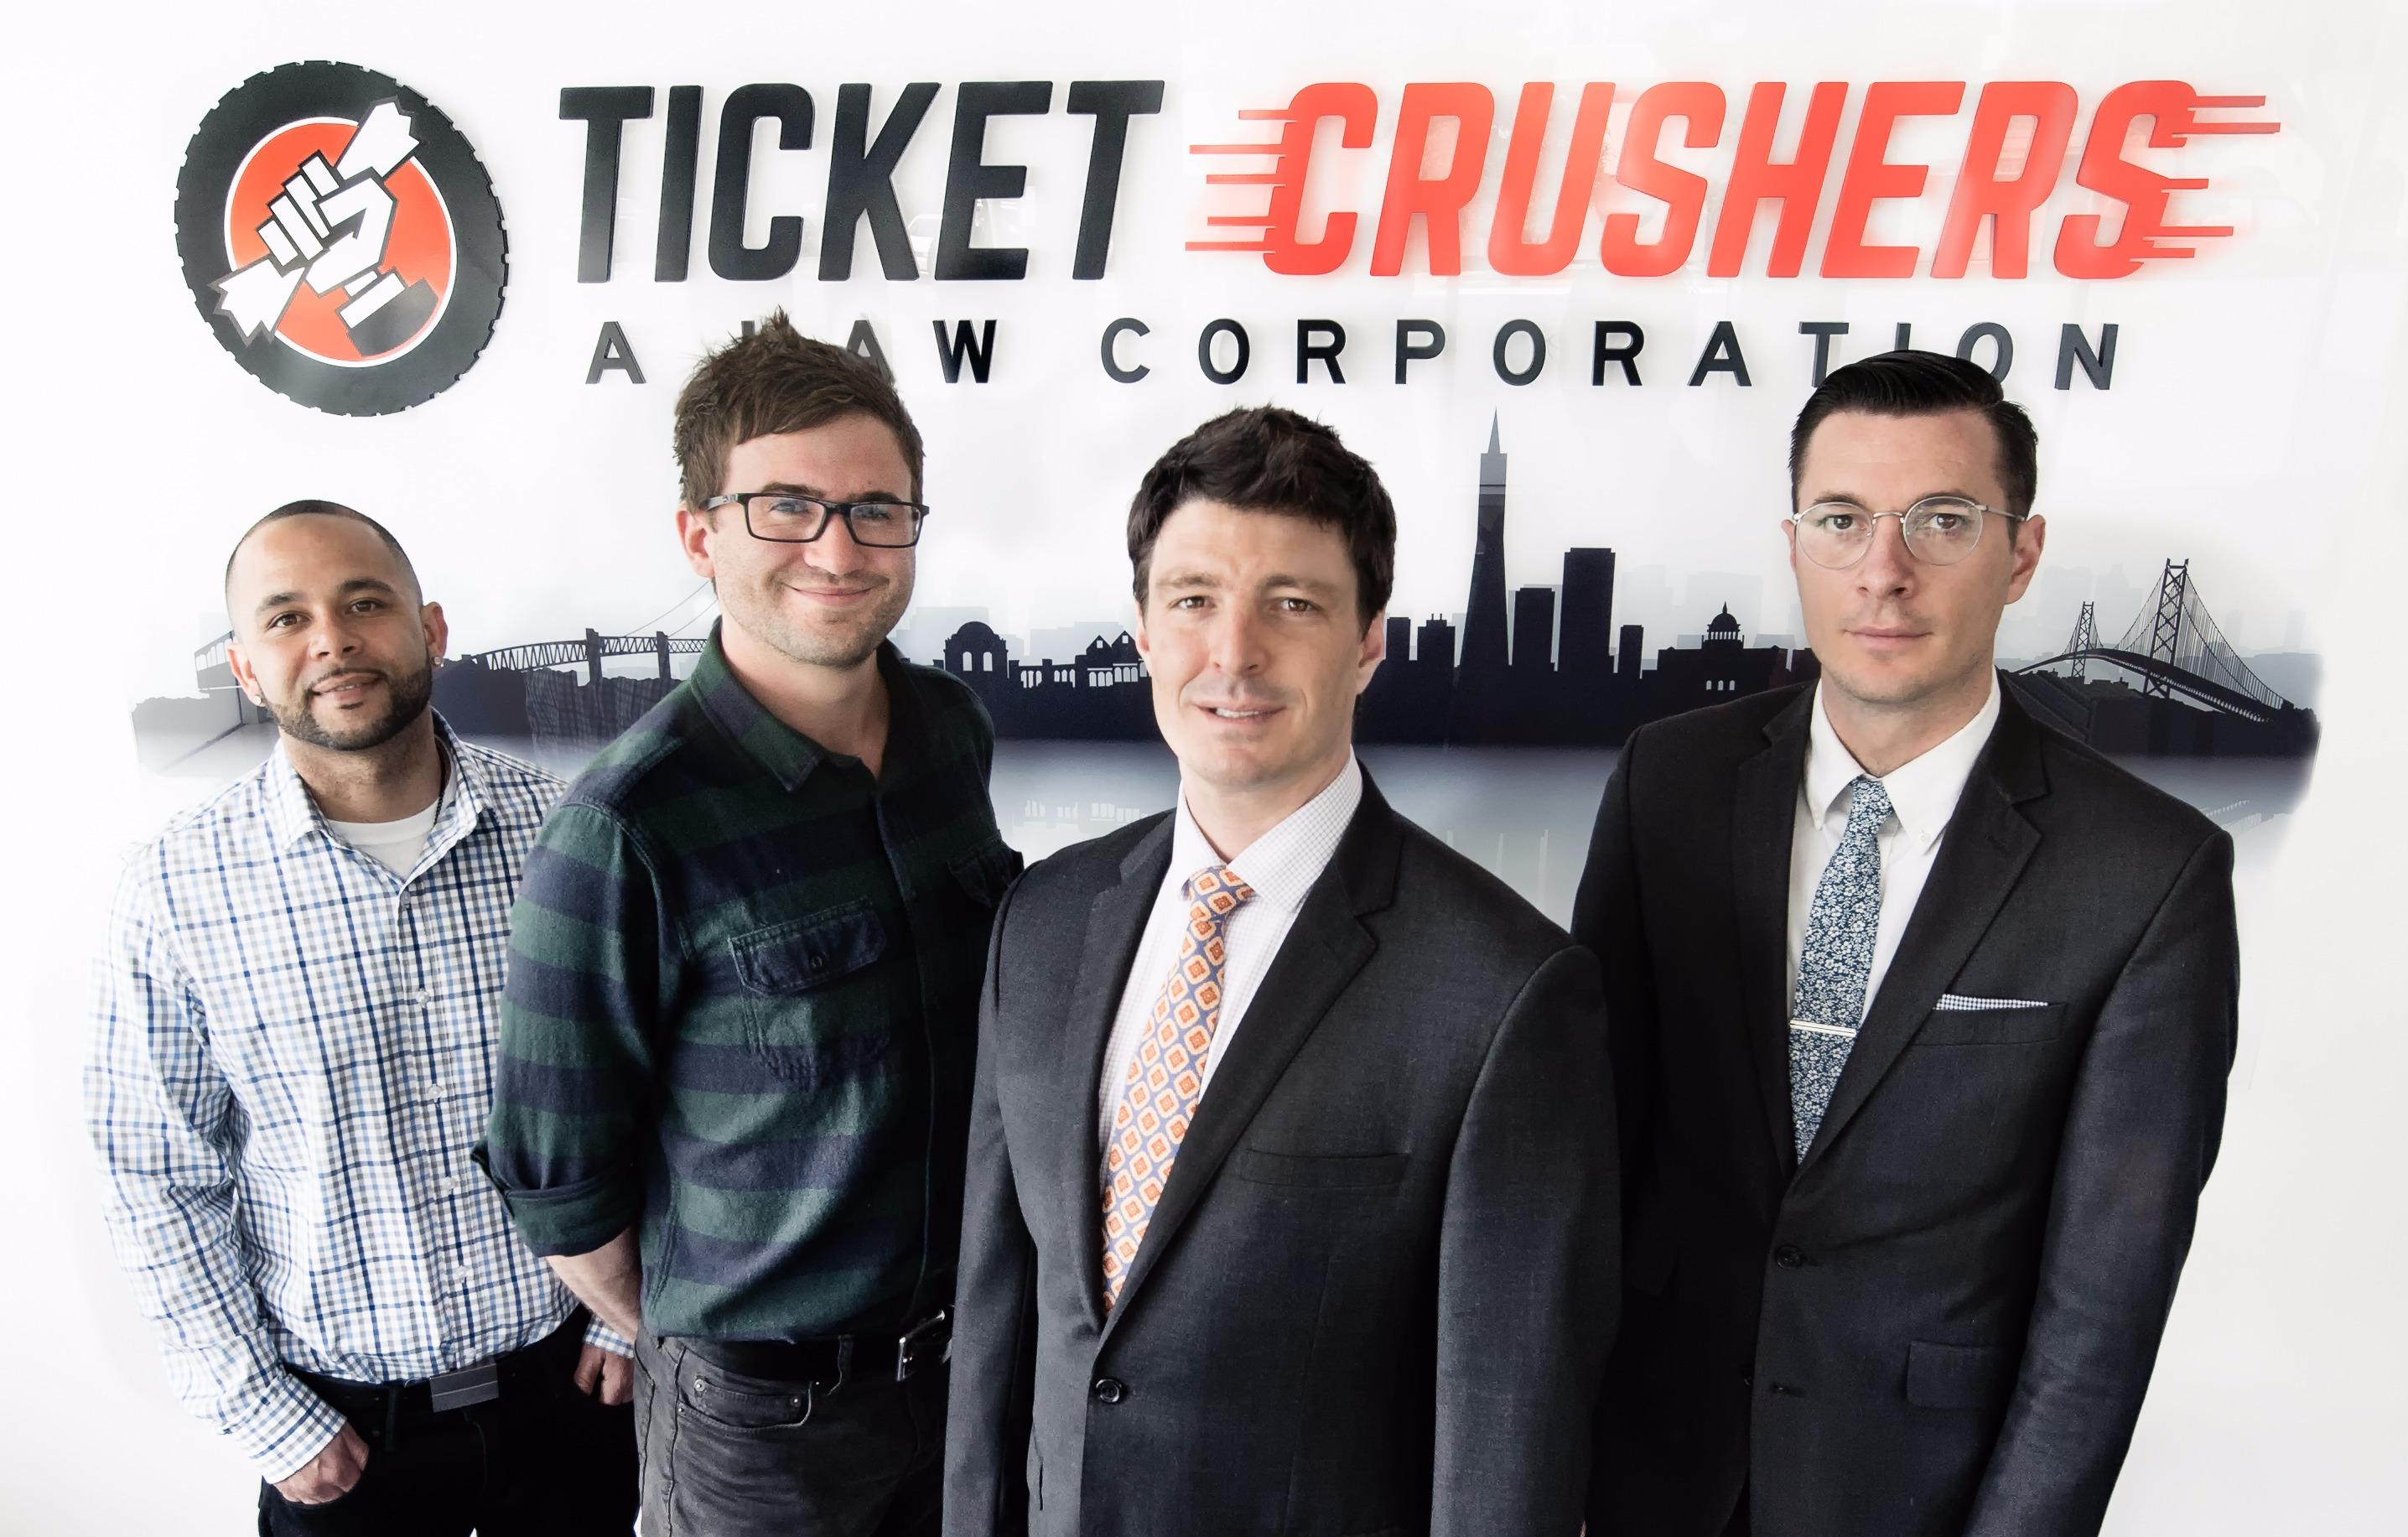 Ticket Crushers, A Law Corporation image 0